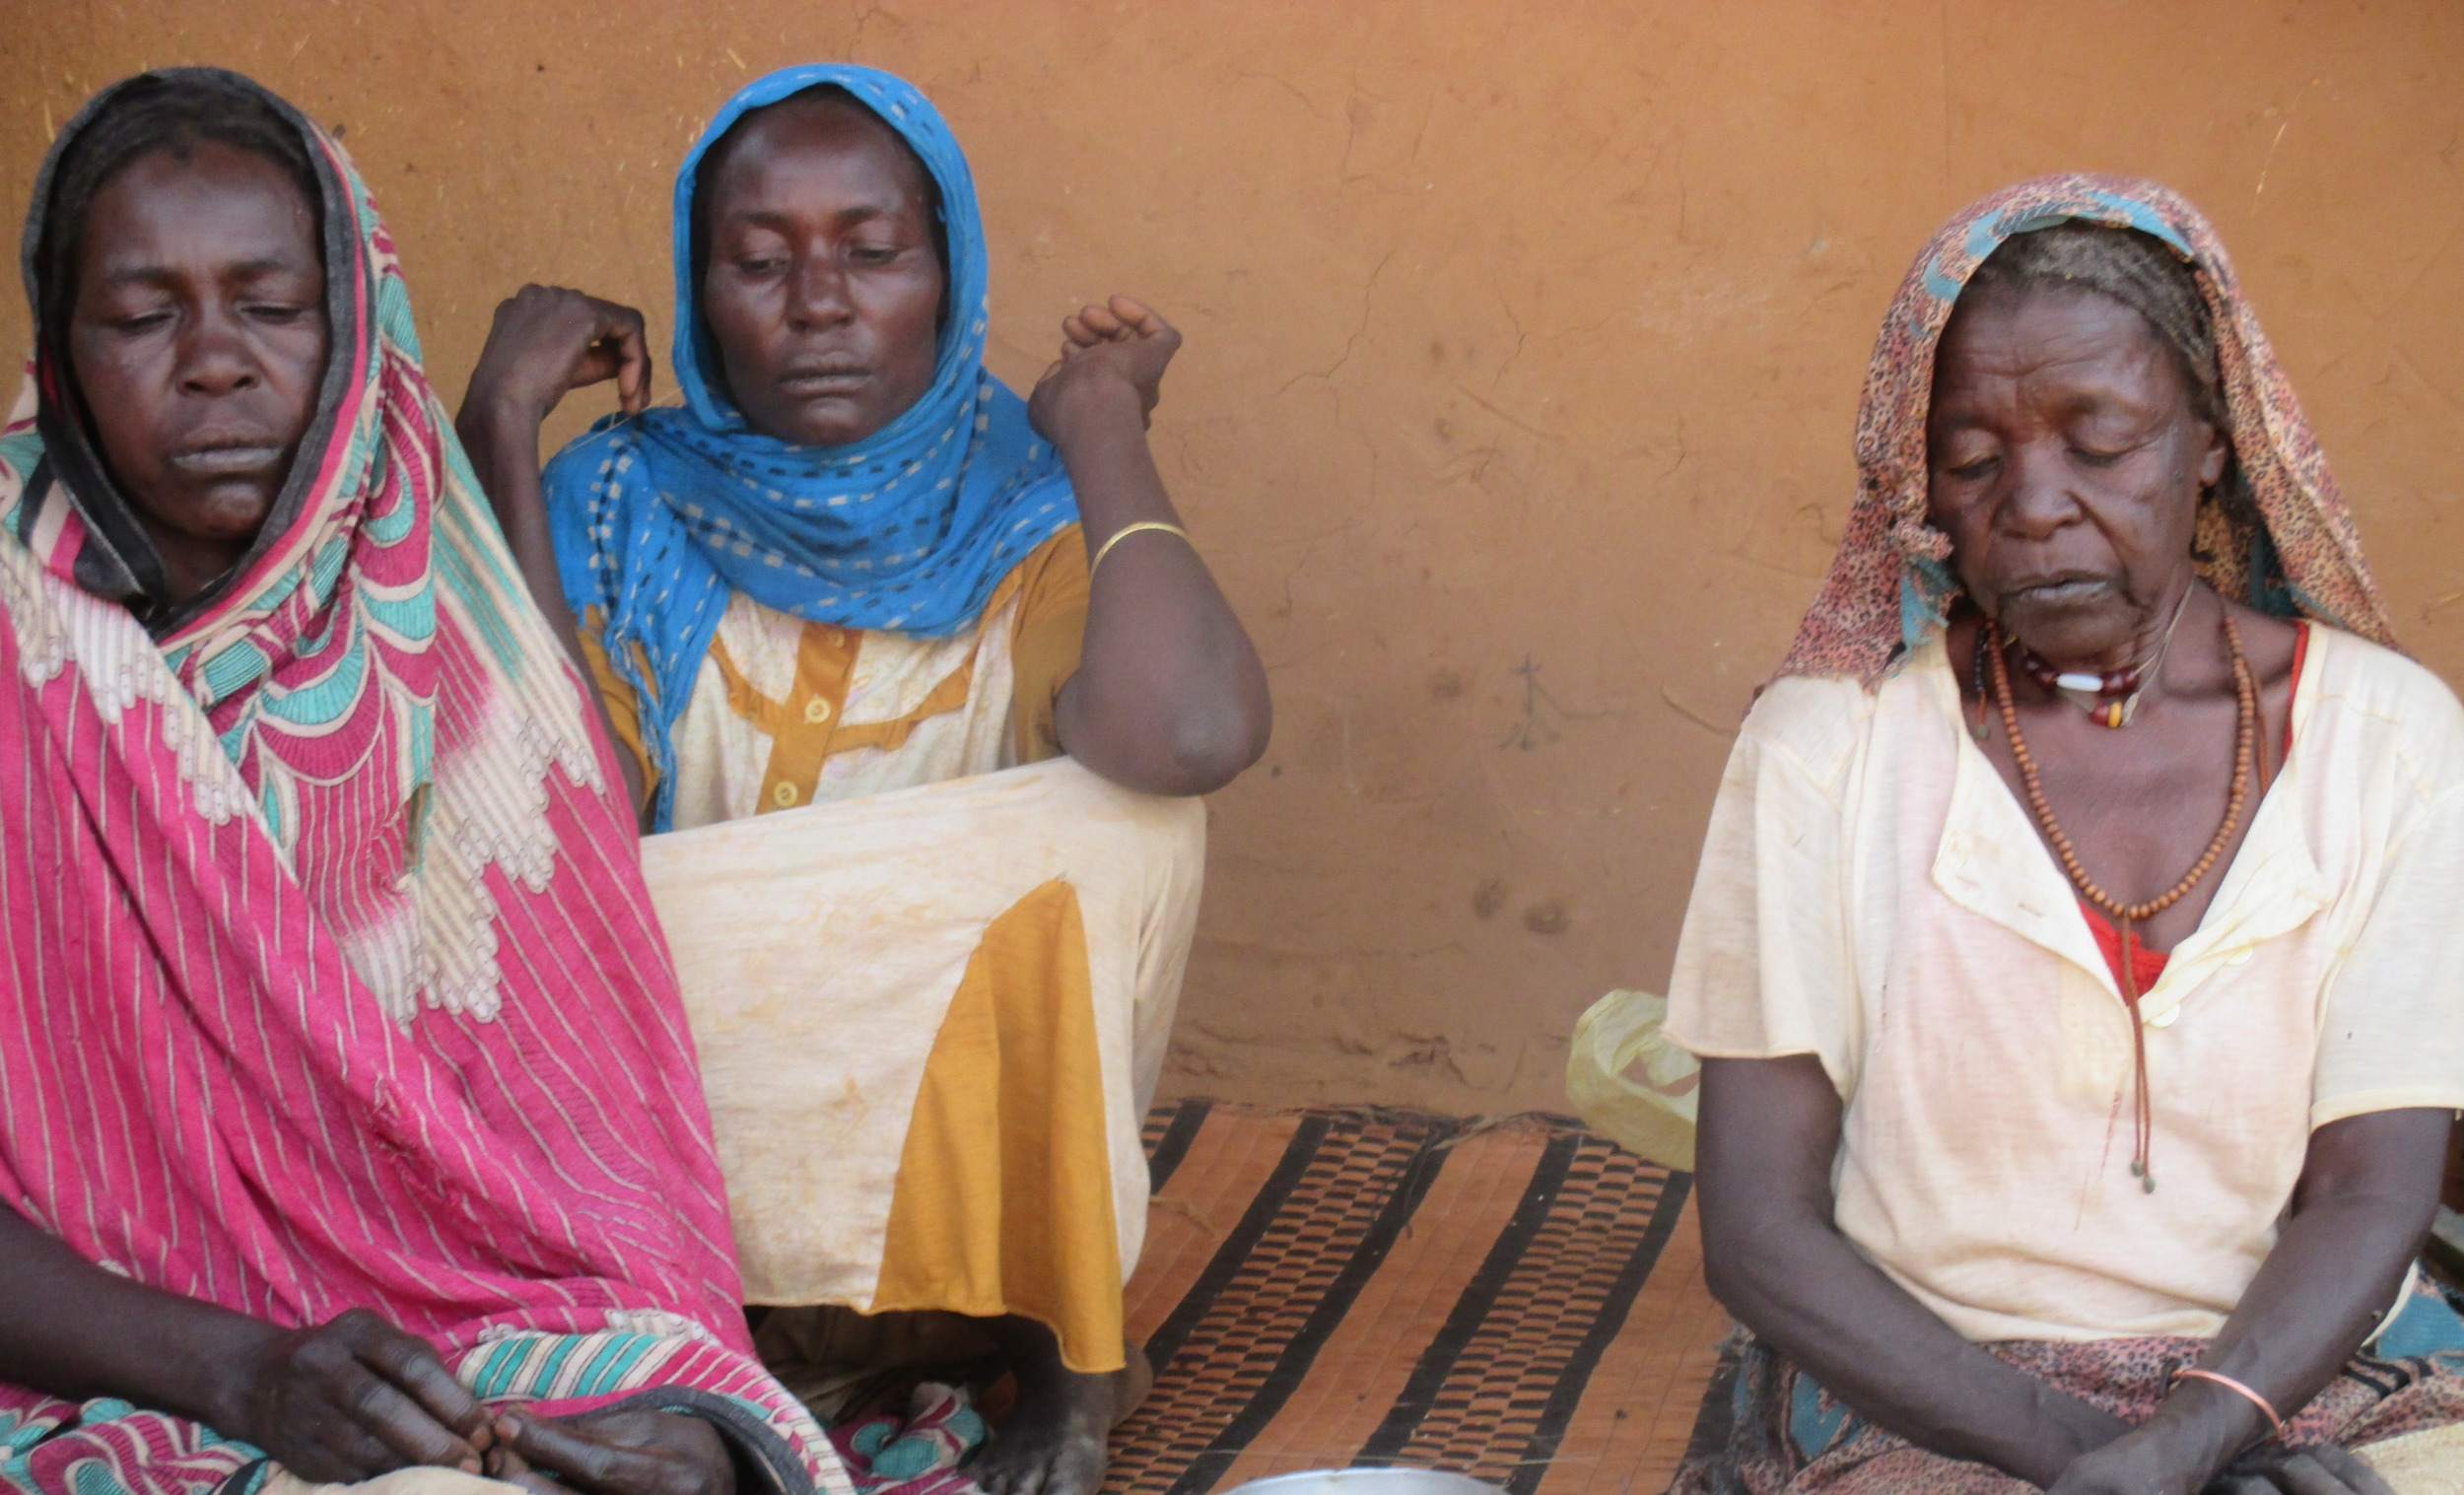 Sudanese refugee women at a camp in Eastern Chad.